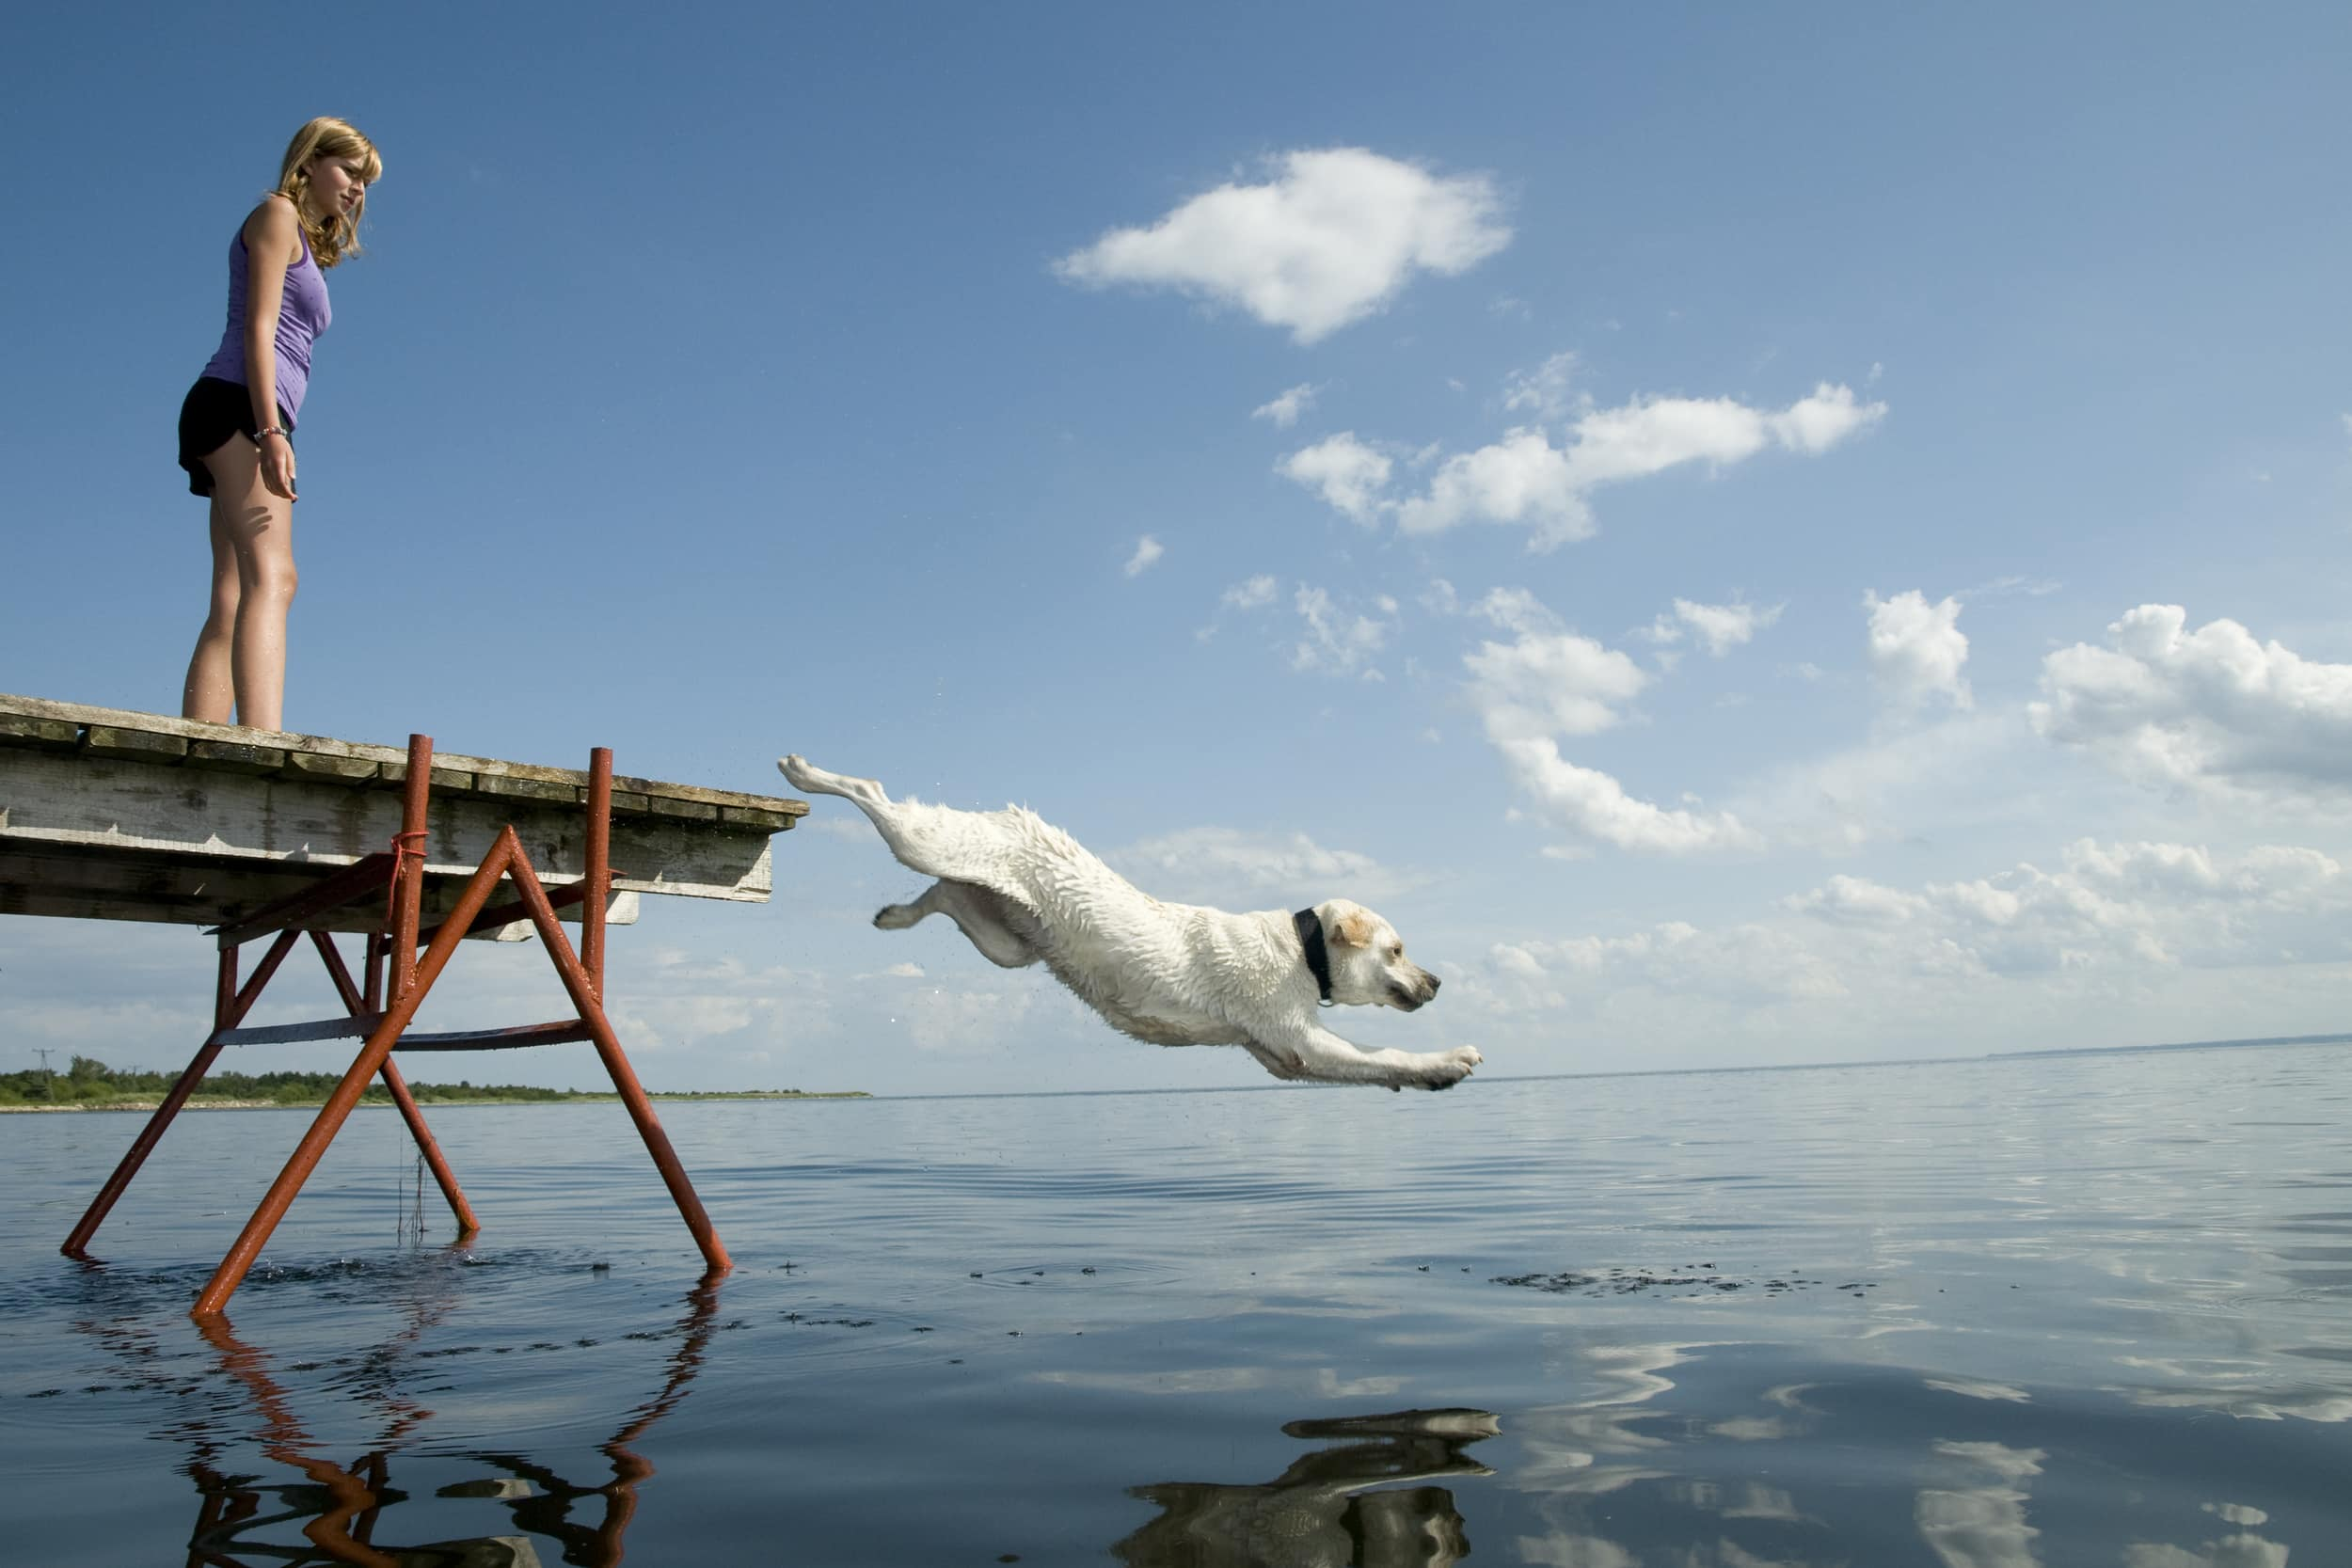 A white labrador jumping off the end of a pier into a lake. On the end of a pier is a girl in shorts and a tank top